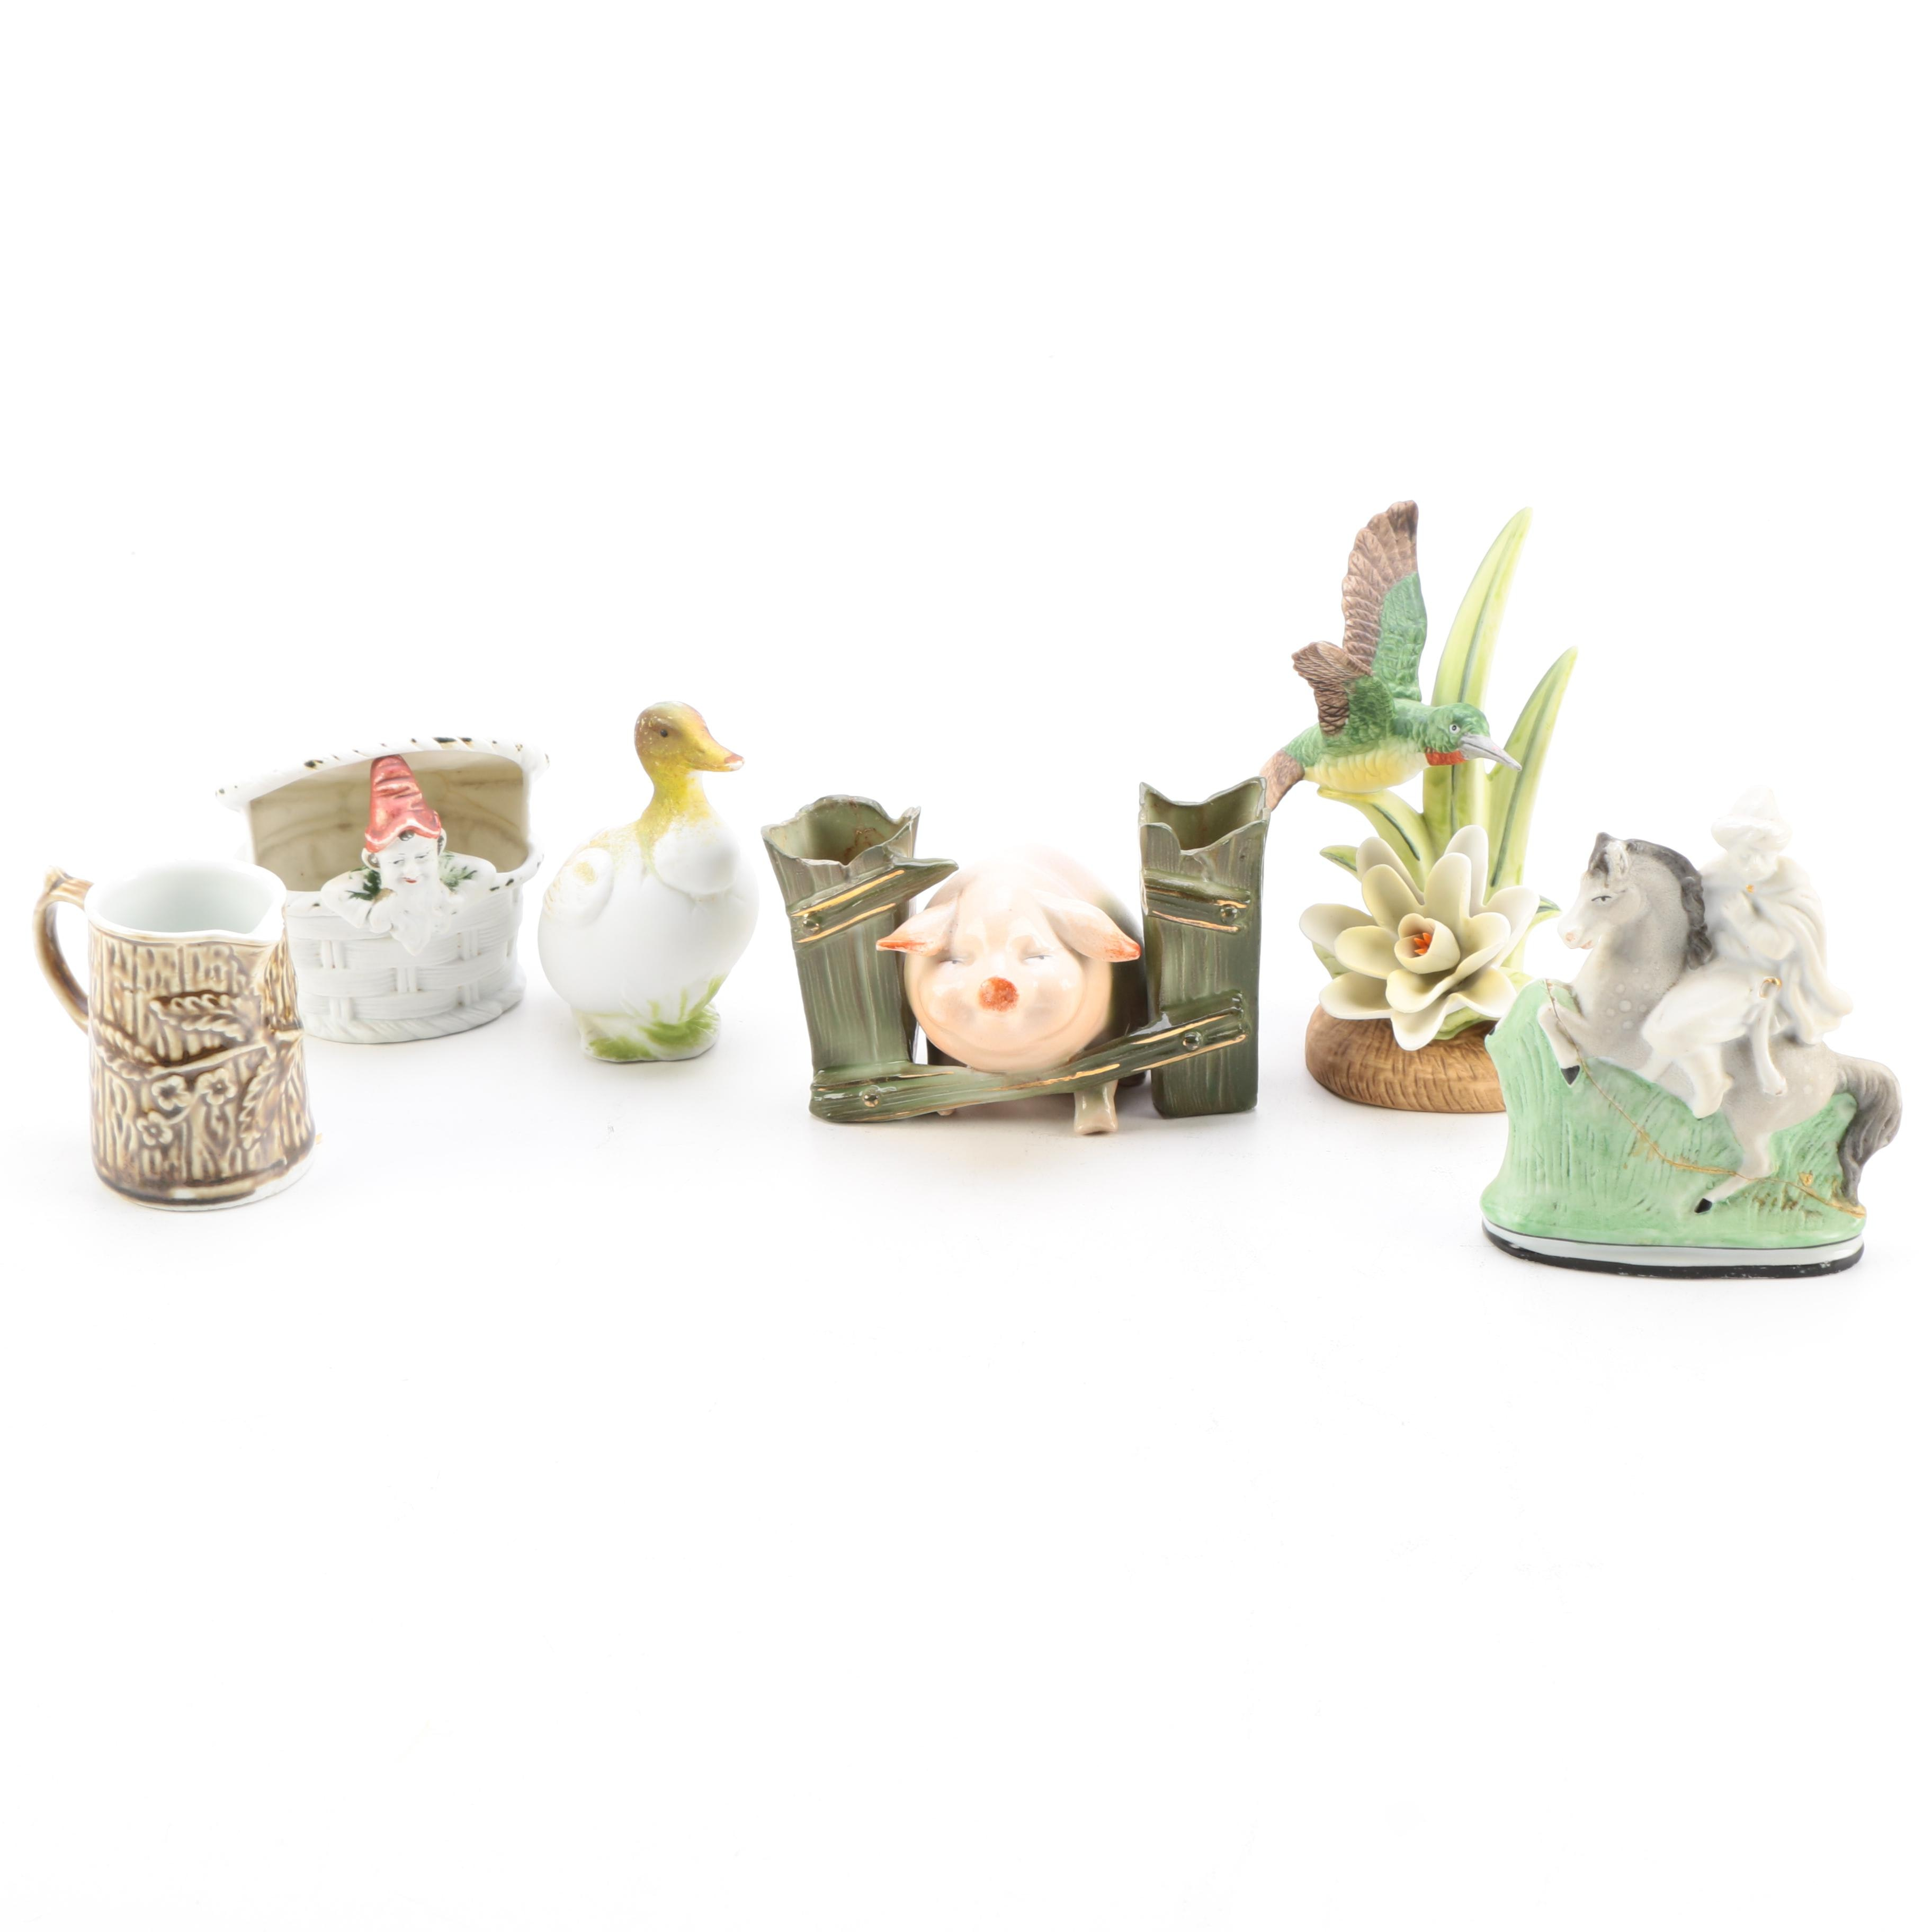 Collection of Porcelain and Ceramic Figurines and Decor including Royal Heritage